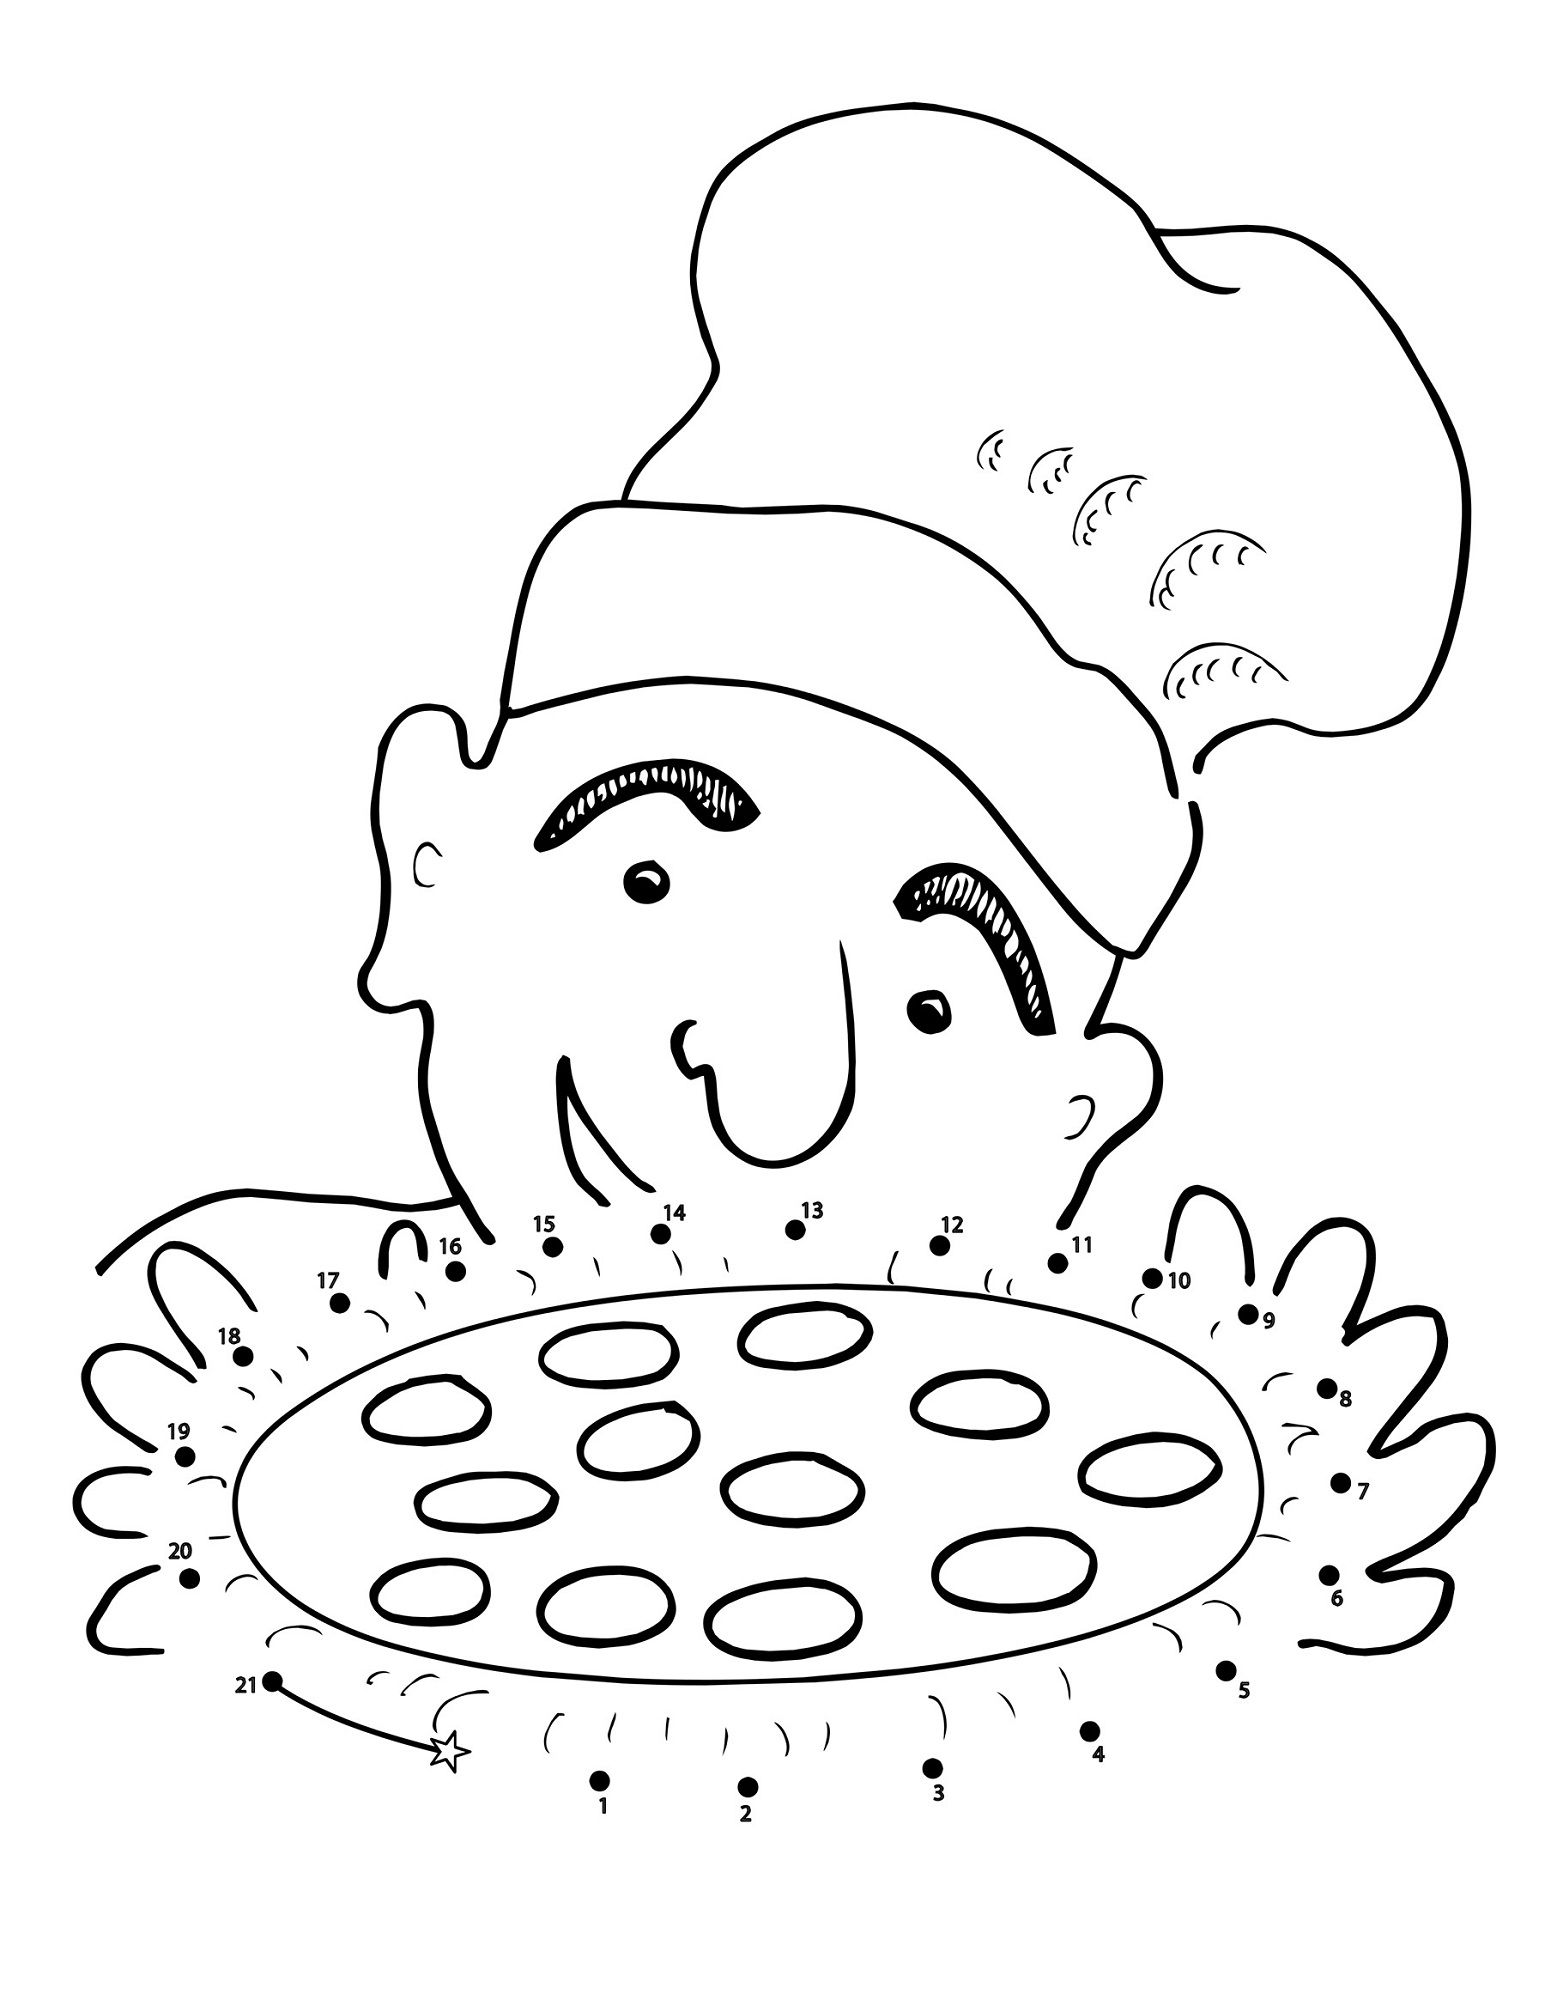 Pizza Maze For Kids Mazes For Kids Coloring Pages Printable